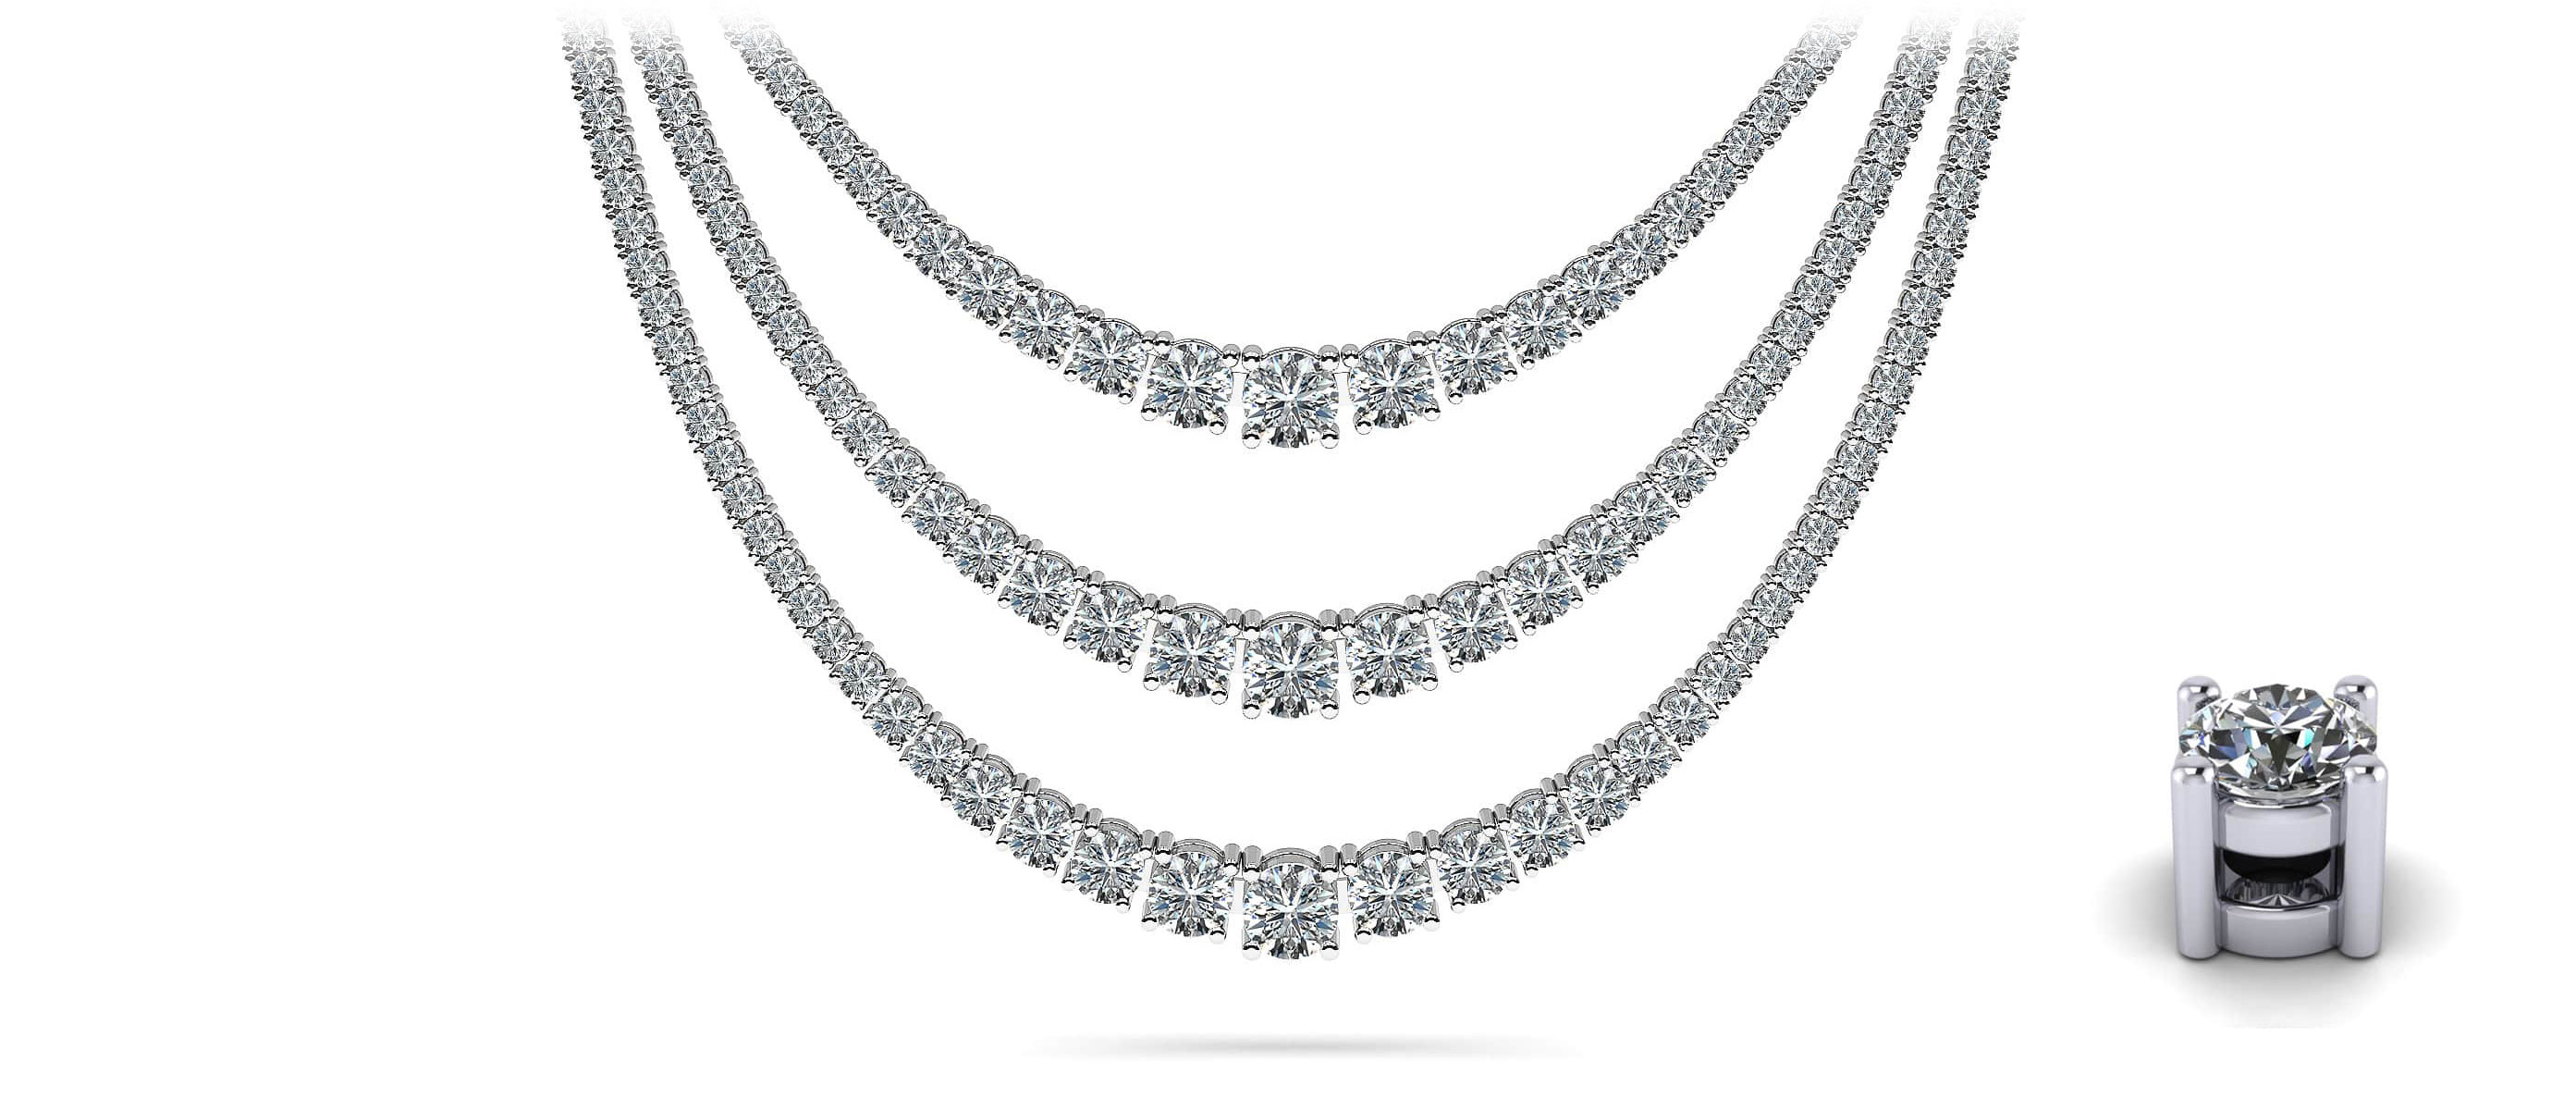 bf2ce6af87be2c 4 Prong Triple Strand Graduated Diamond Necklace